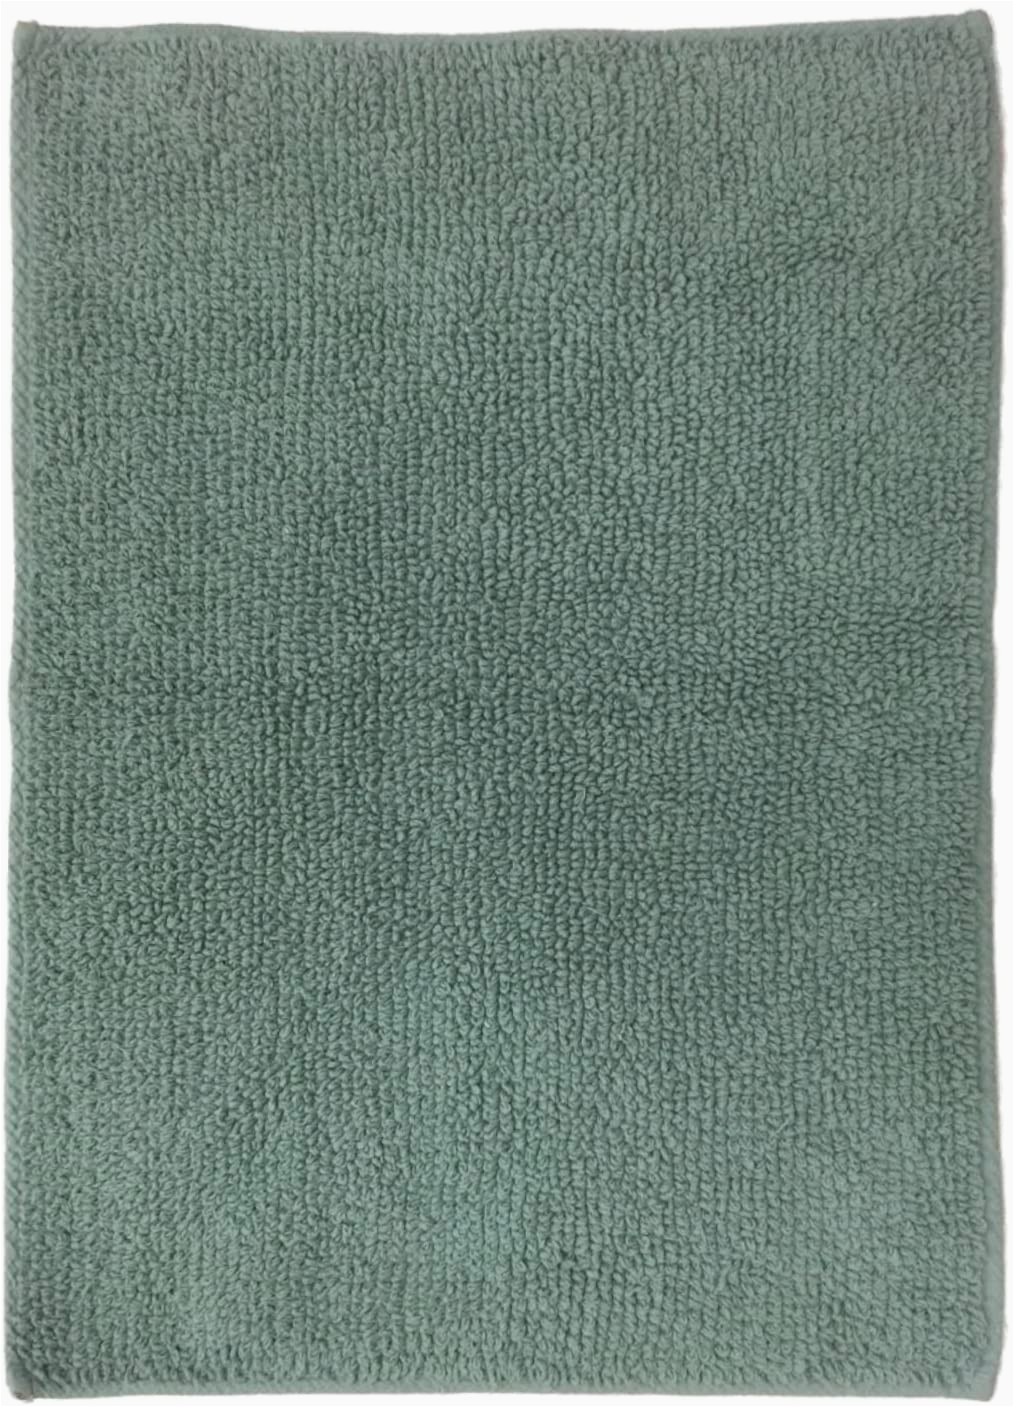 Sonoma Cotton Bath Rugs Amazon sonoma Reversible Dark Aqua Blue Plush Pile